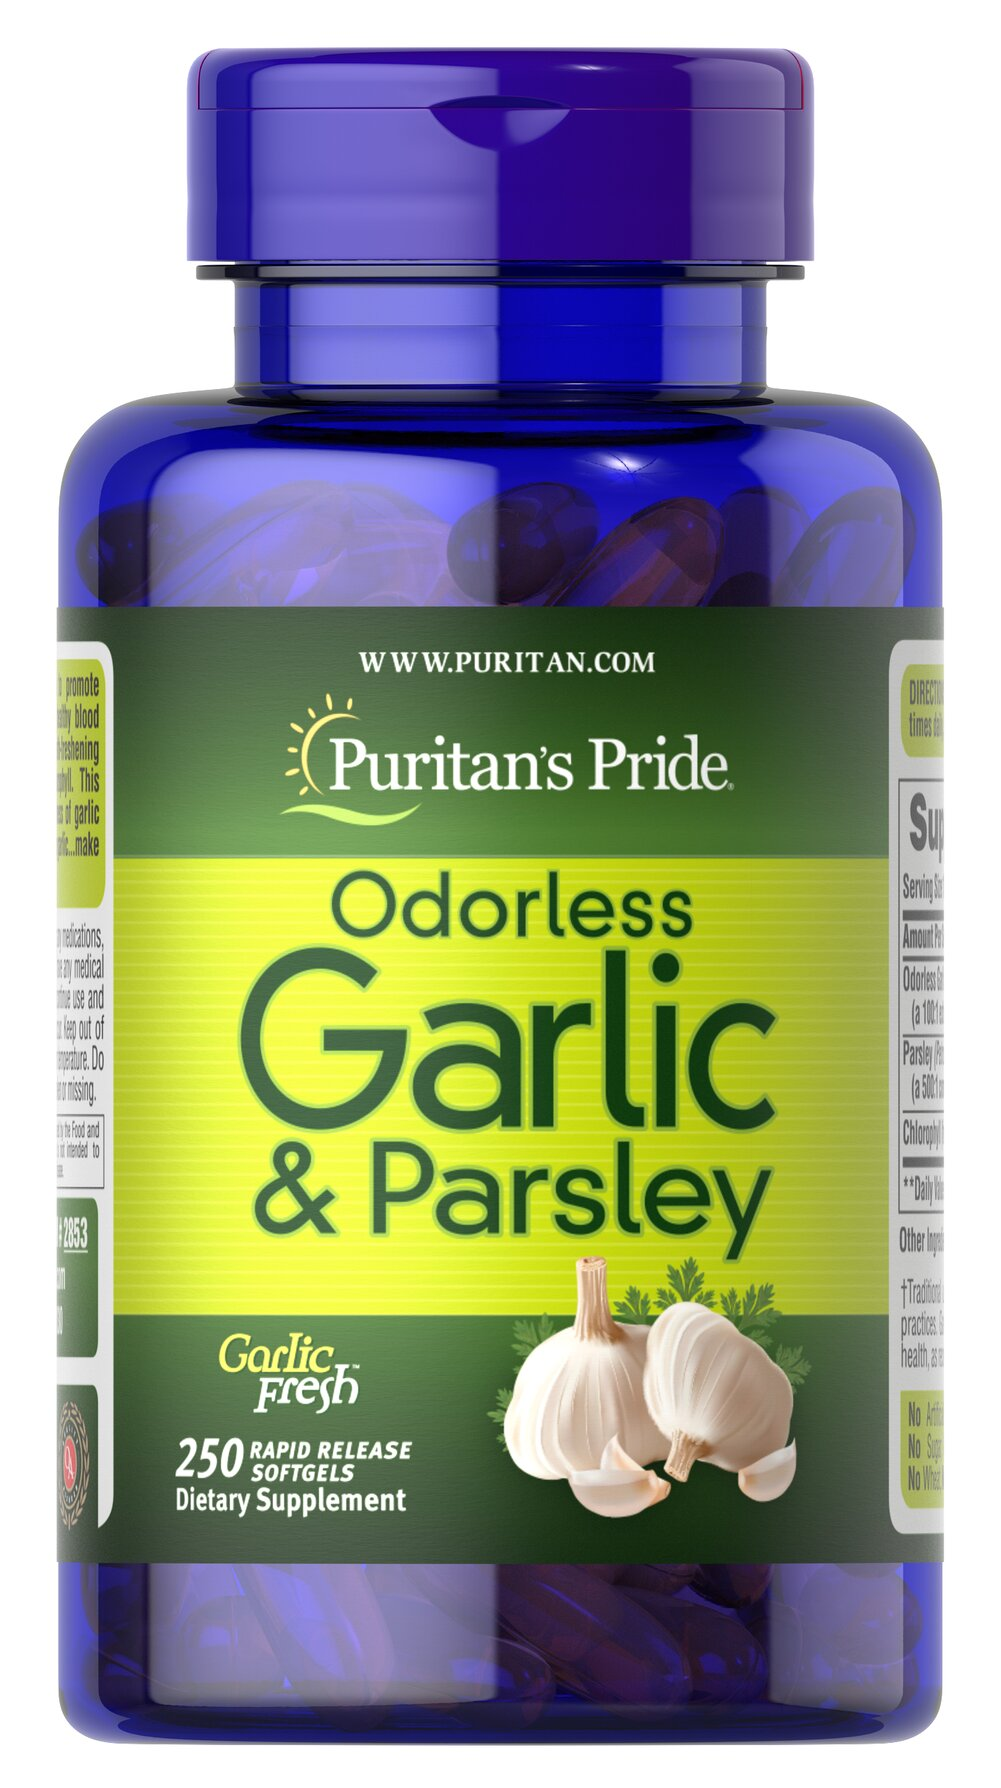 Odorless Garlic & Parsley 500 mg / 100 mg  250 Rapid Release Softgels 500 mg $19.99